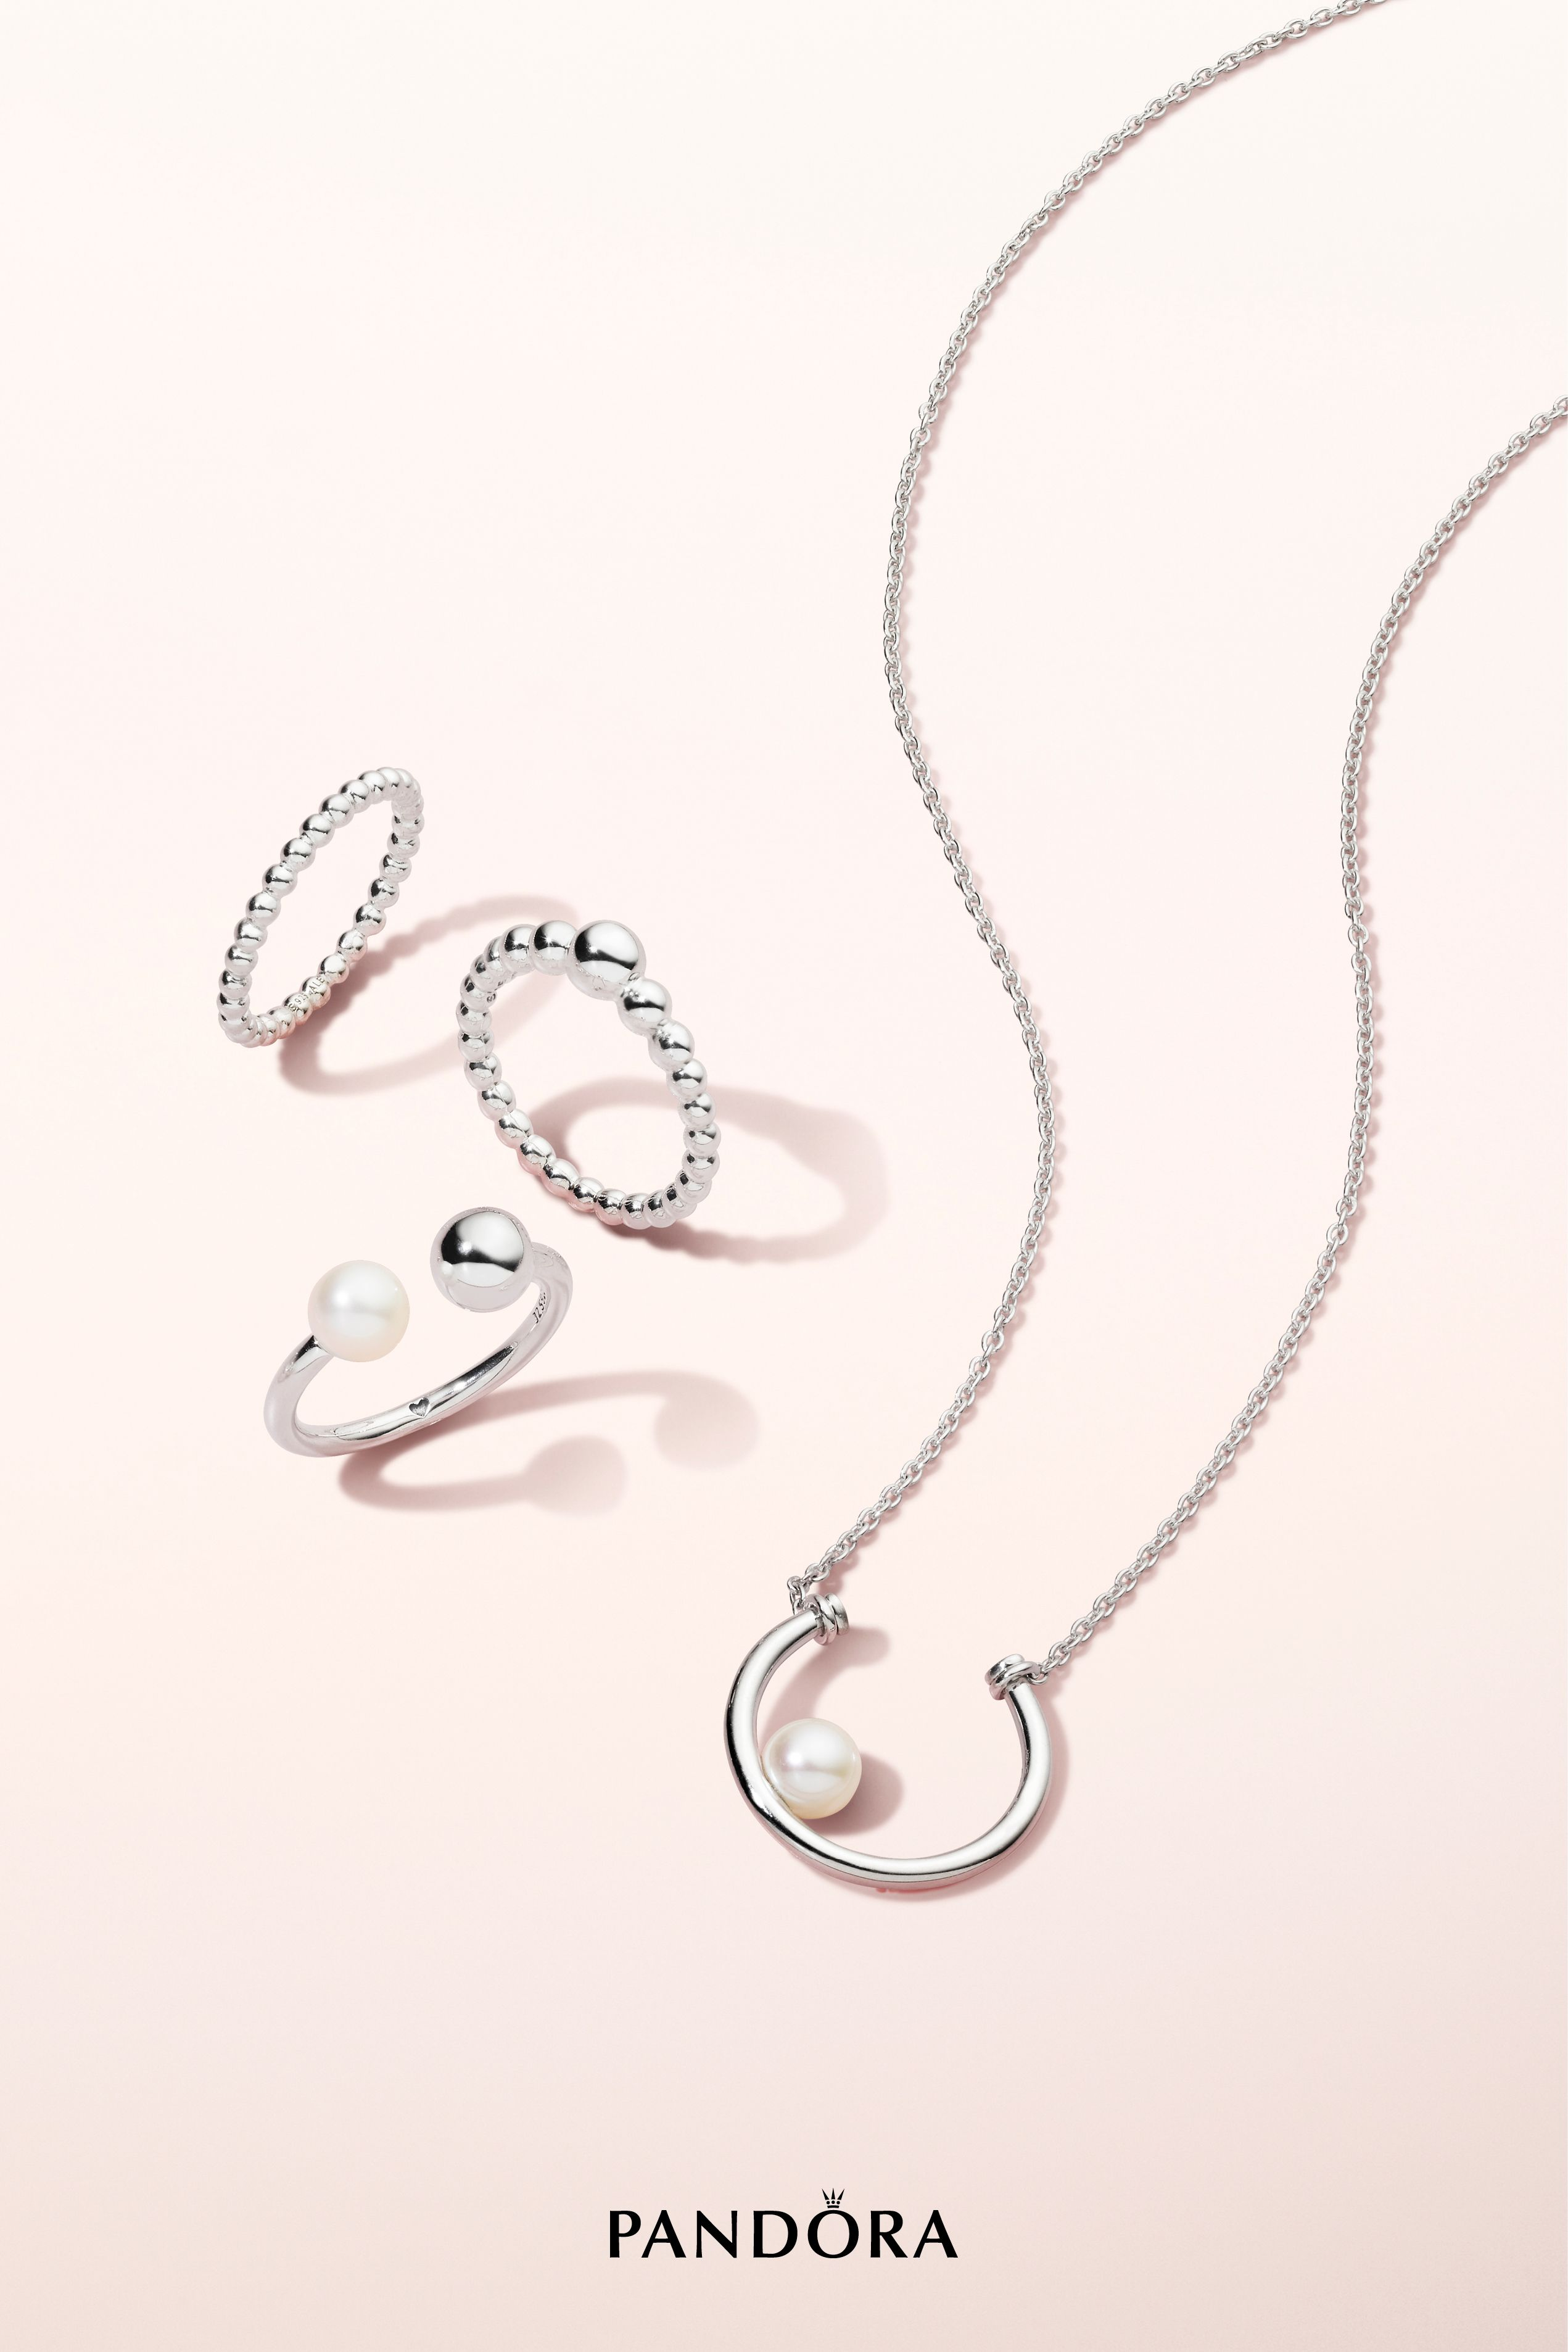 4d4a36c6ff14 A pearl of luck floats safely in the horseshoe on this sterling silver  necklace. The